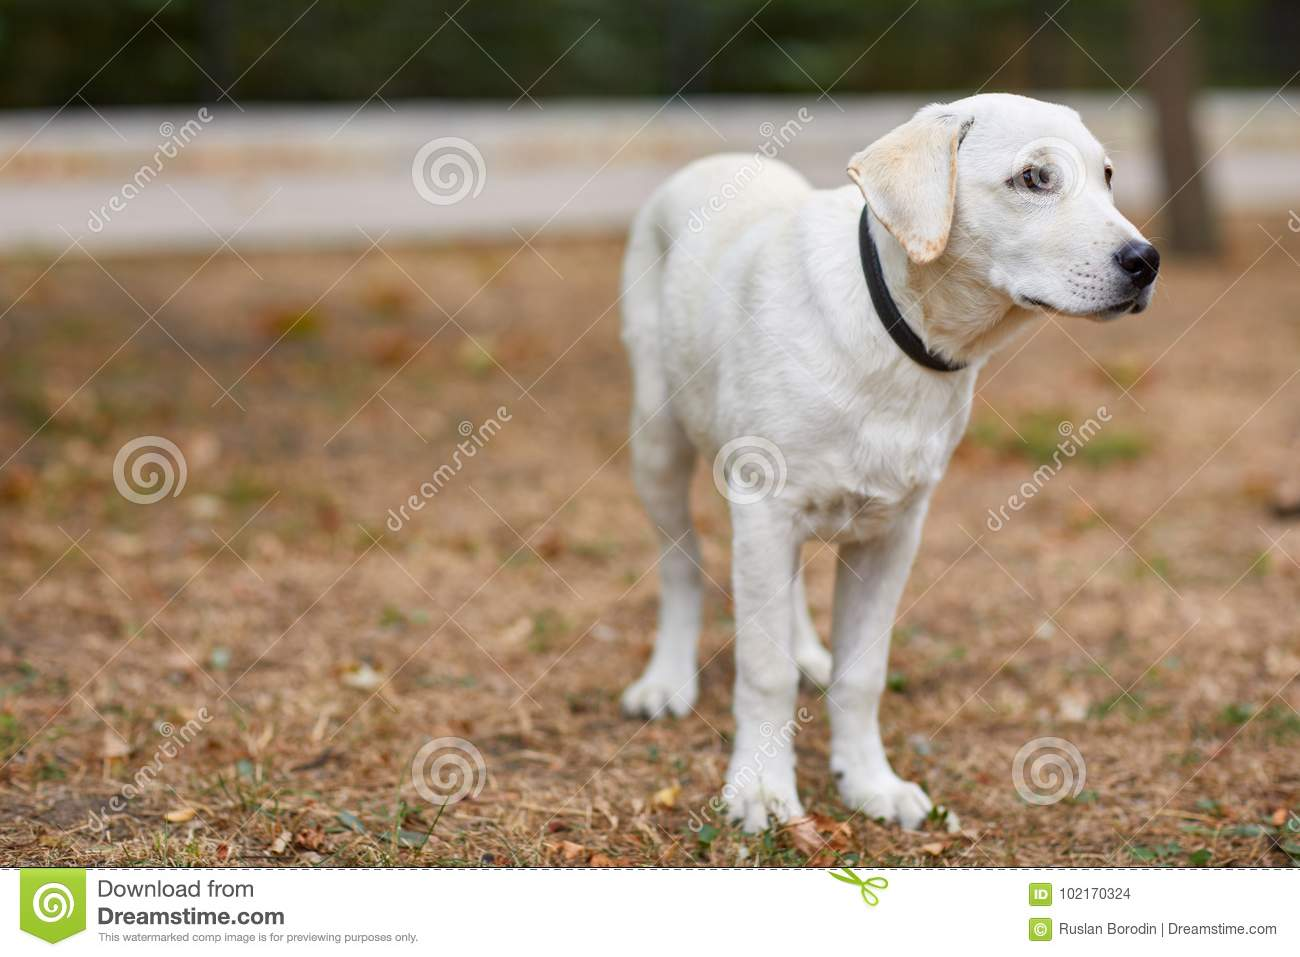 Beautiful white dog having fun in the park pet concept stock photo image of animal outdoor - Dogs for small spaces concept ...